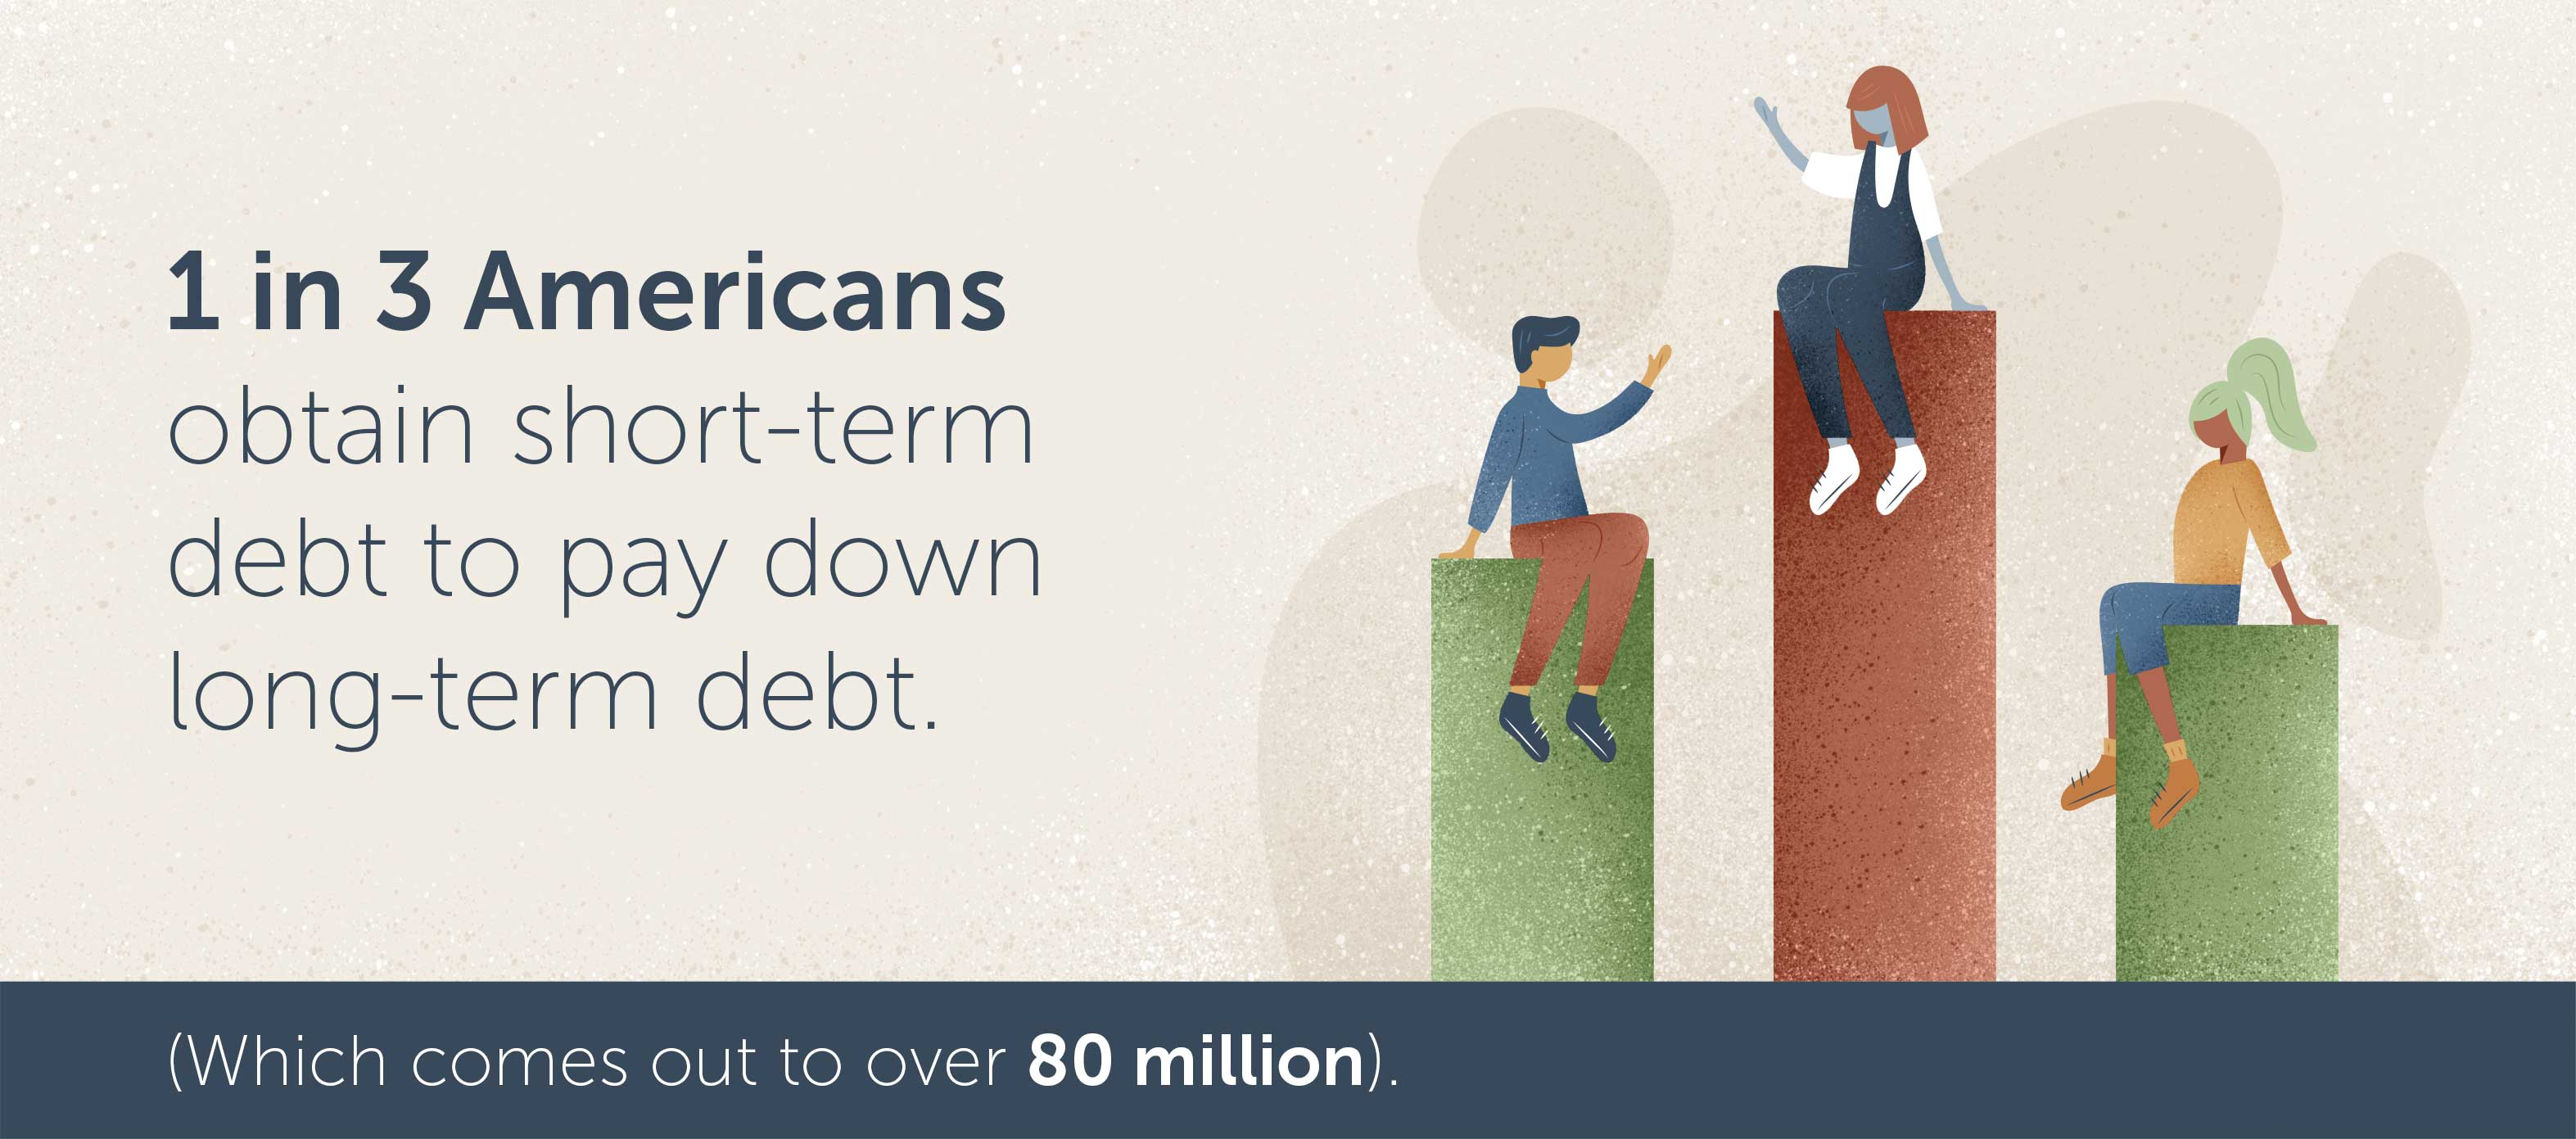 1 in 3 Americans obtain short term debt to pay down long term debt